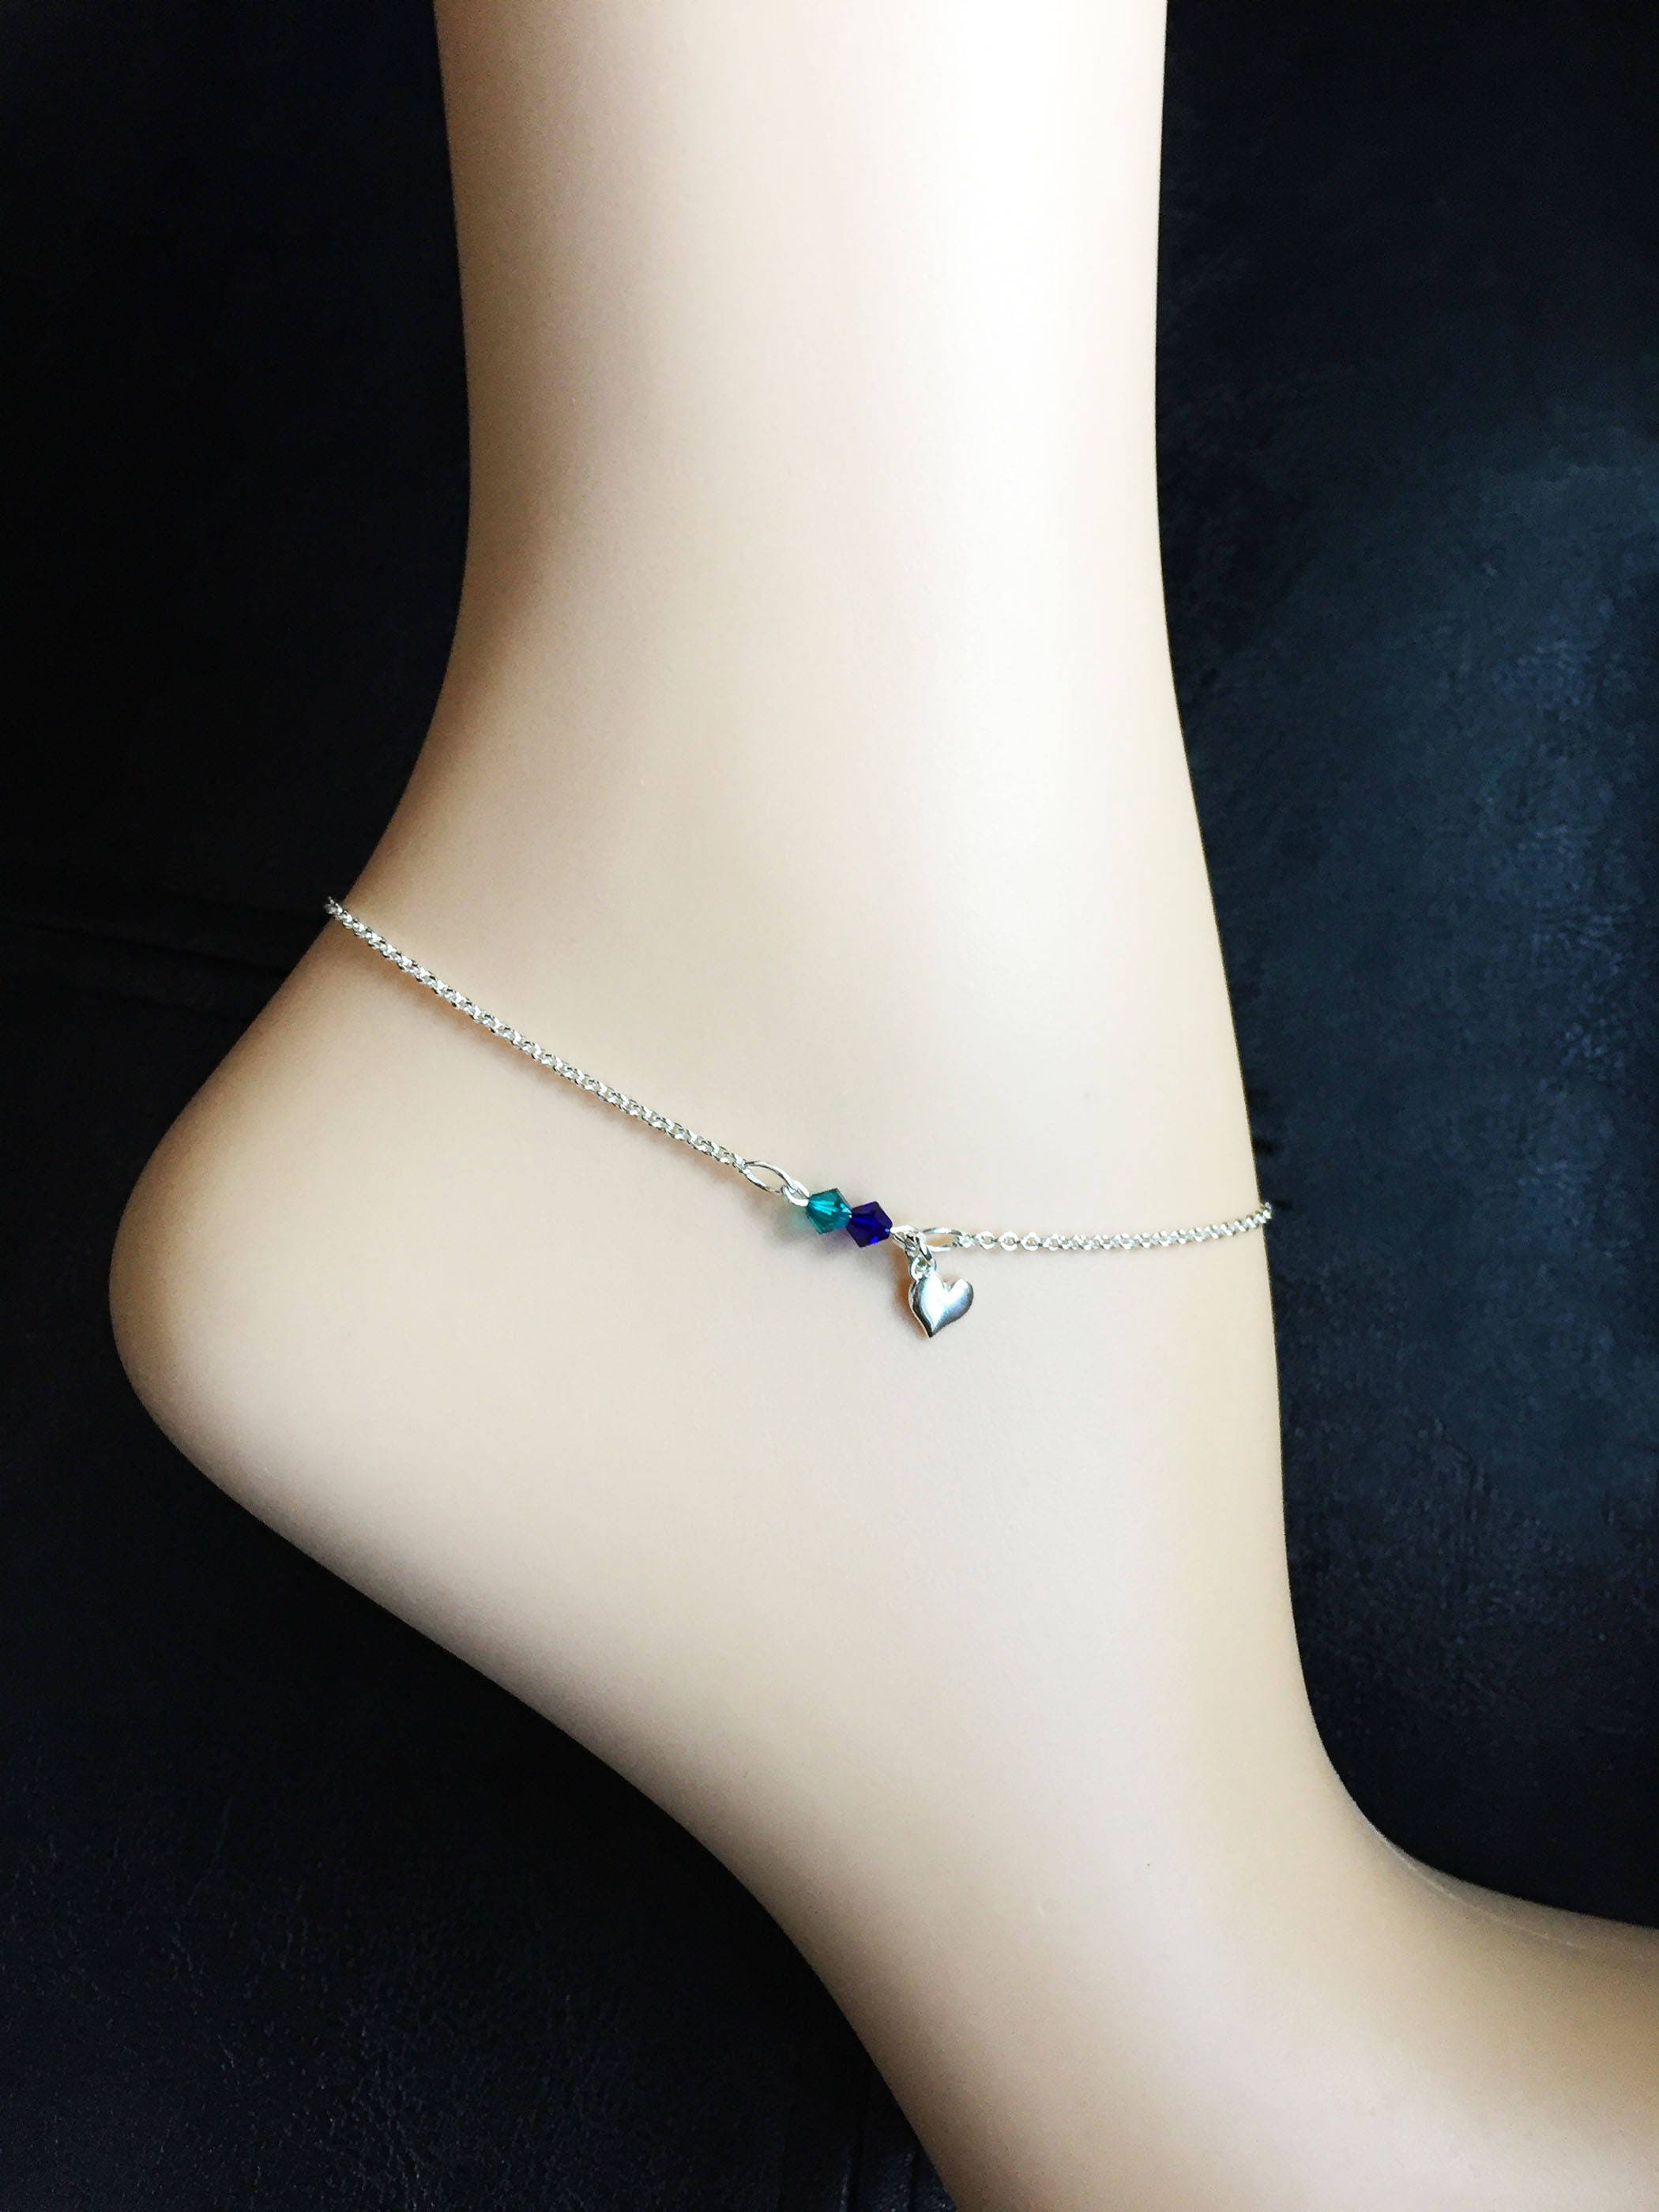 bracelet crafts moon jewellery shop heart pearl silver moth anklet or sterling chain